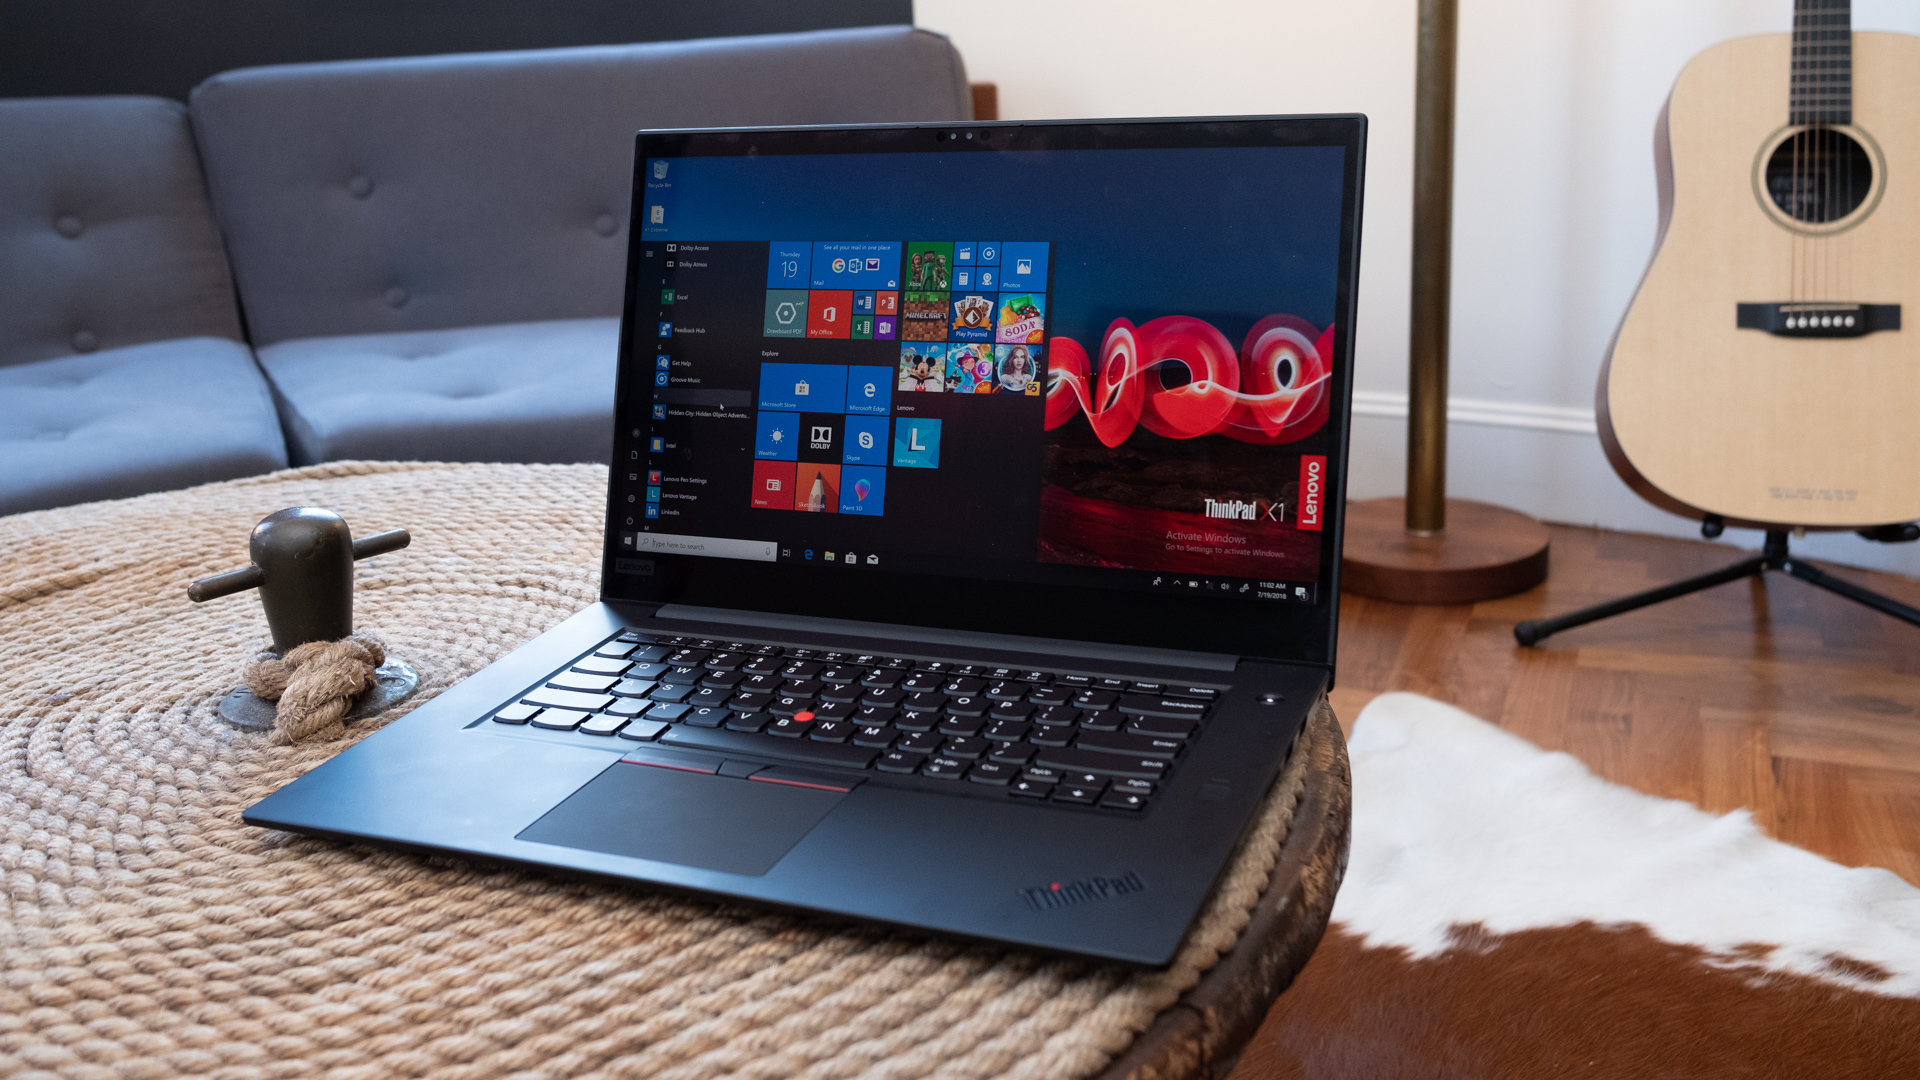 Best 15-inch laptop: Lenovo ThinkPad X1 Extreme